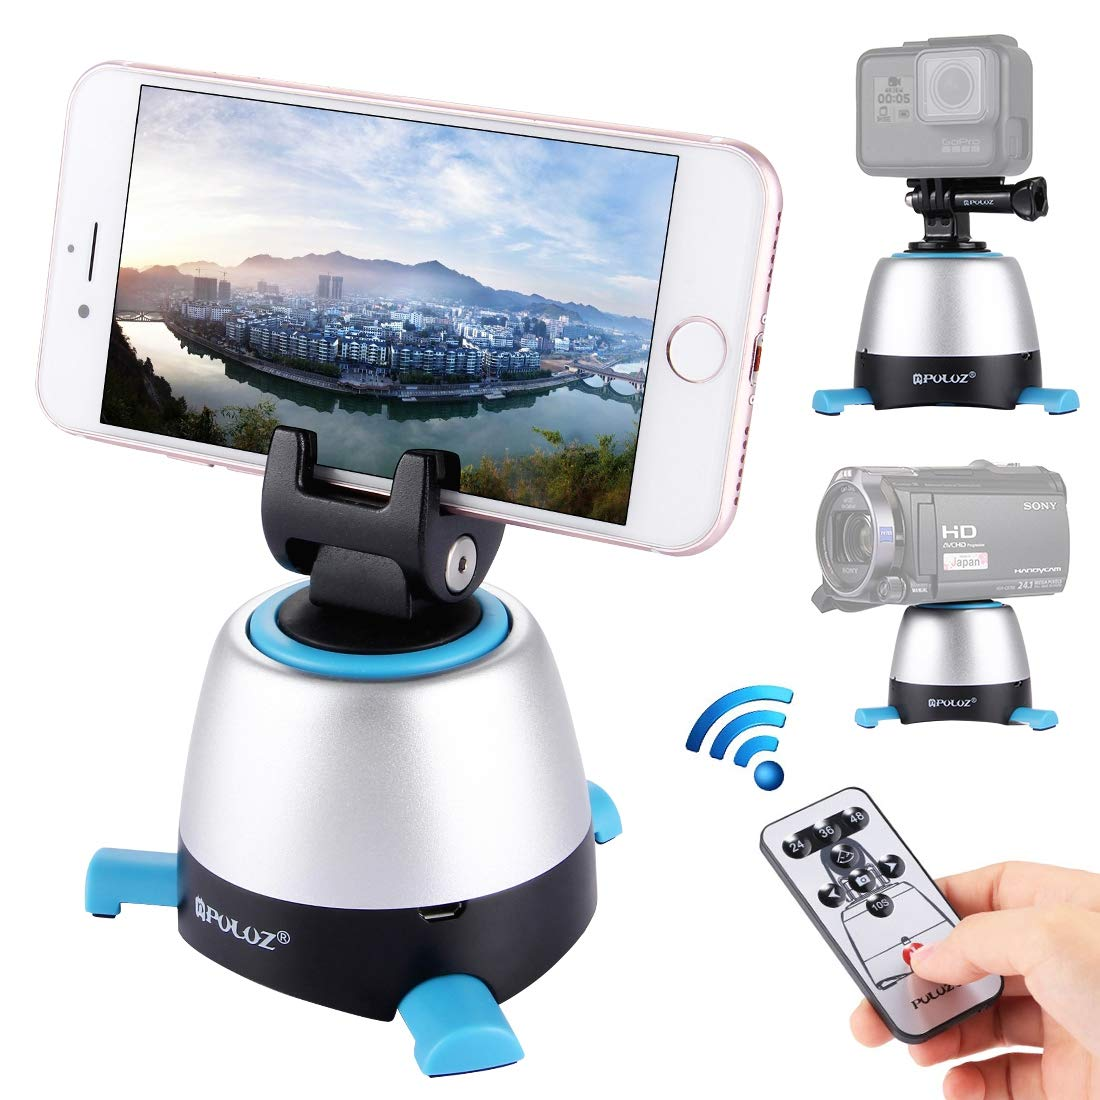 WSJ PULUZ Electronic 360 Degree Rotation Panoramic Head with Remote Controller for Smartphones, GoPro, DSLR Cameras(Yellow),Blue